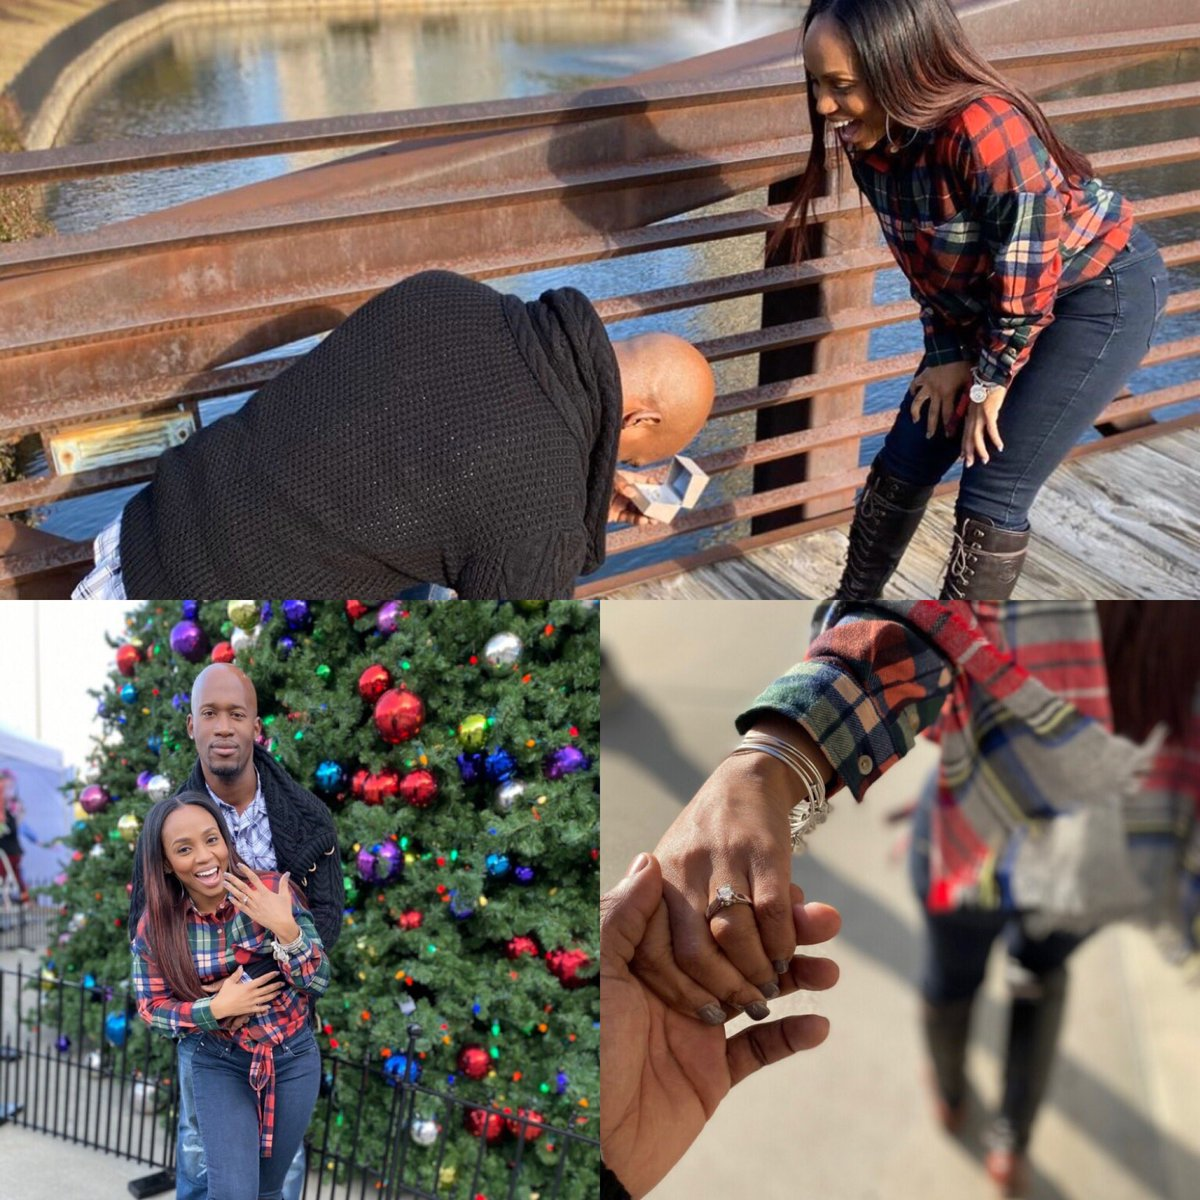 """SHE SAID YES! The ABSOLUTE BEST version of a """"reality"""" show is when something REALLY REAL comes from it! Help me CONGRATULATE the first cpl from our #ReadyToLove series to get ENGAGED! Tmw night we'll show never seen footage of their journey! CONGRATS MIKE AND IEASHIA!!! 🙏🏾🖤❤️"""